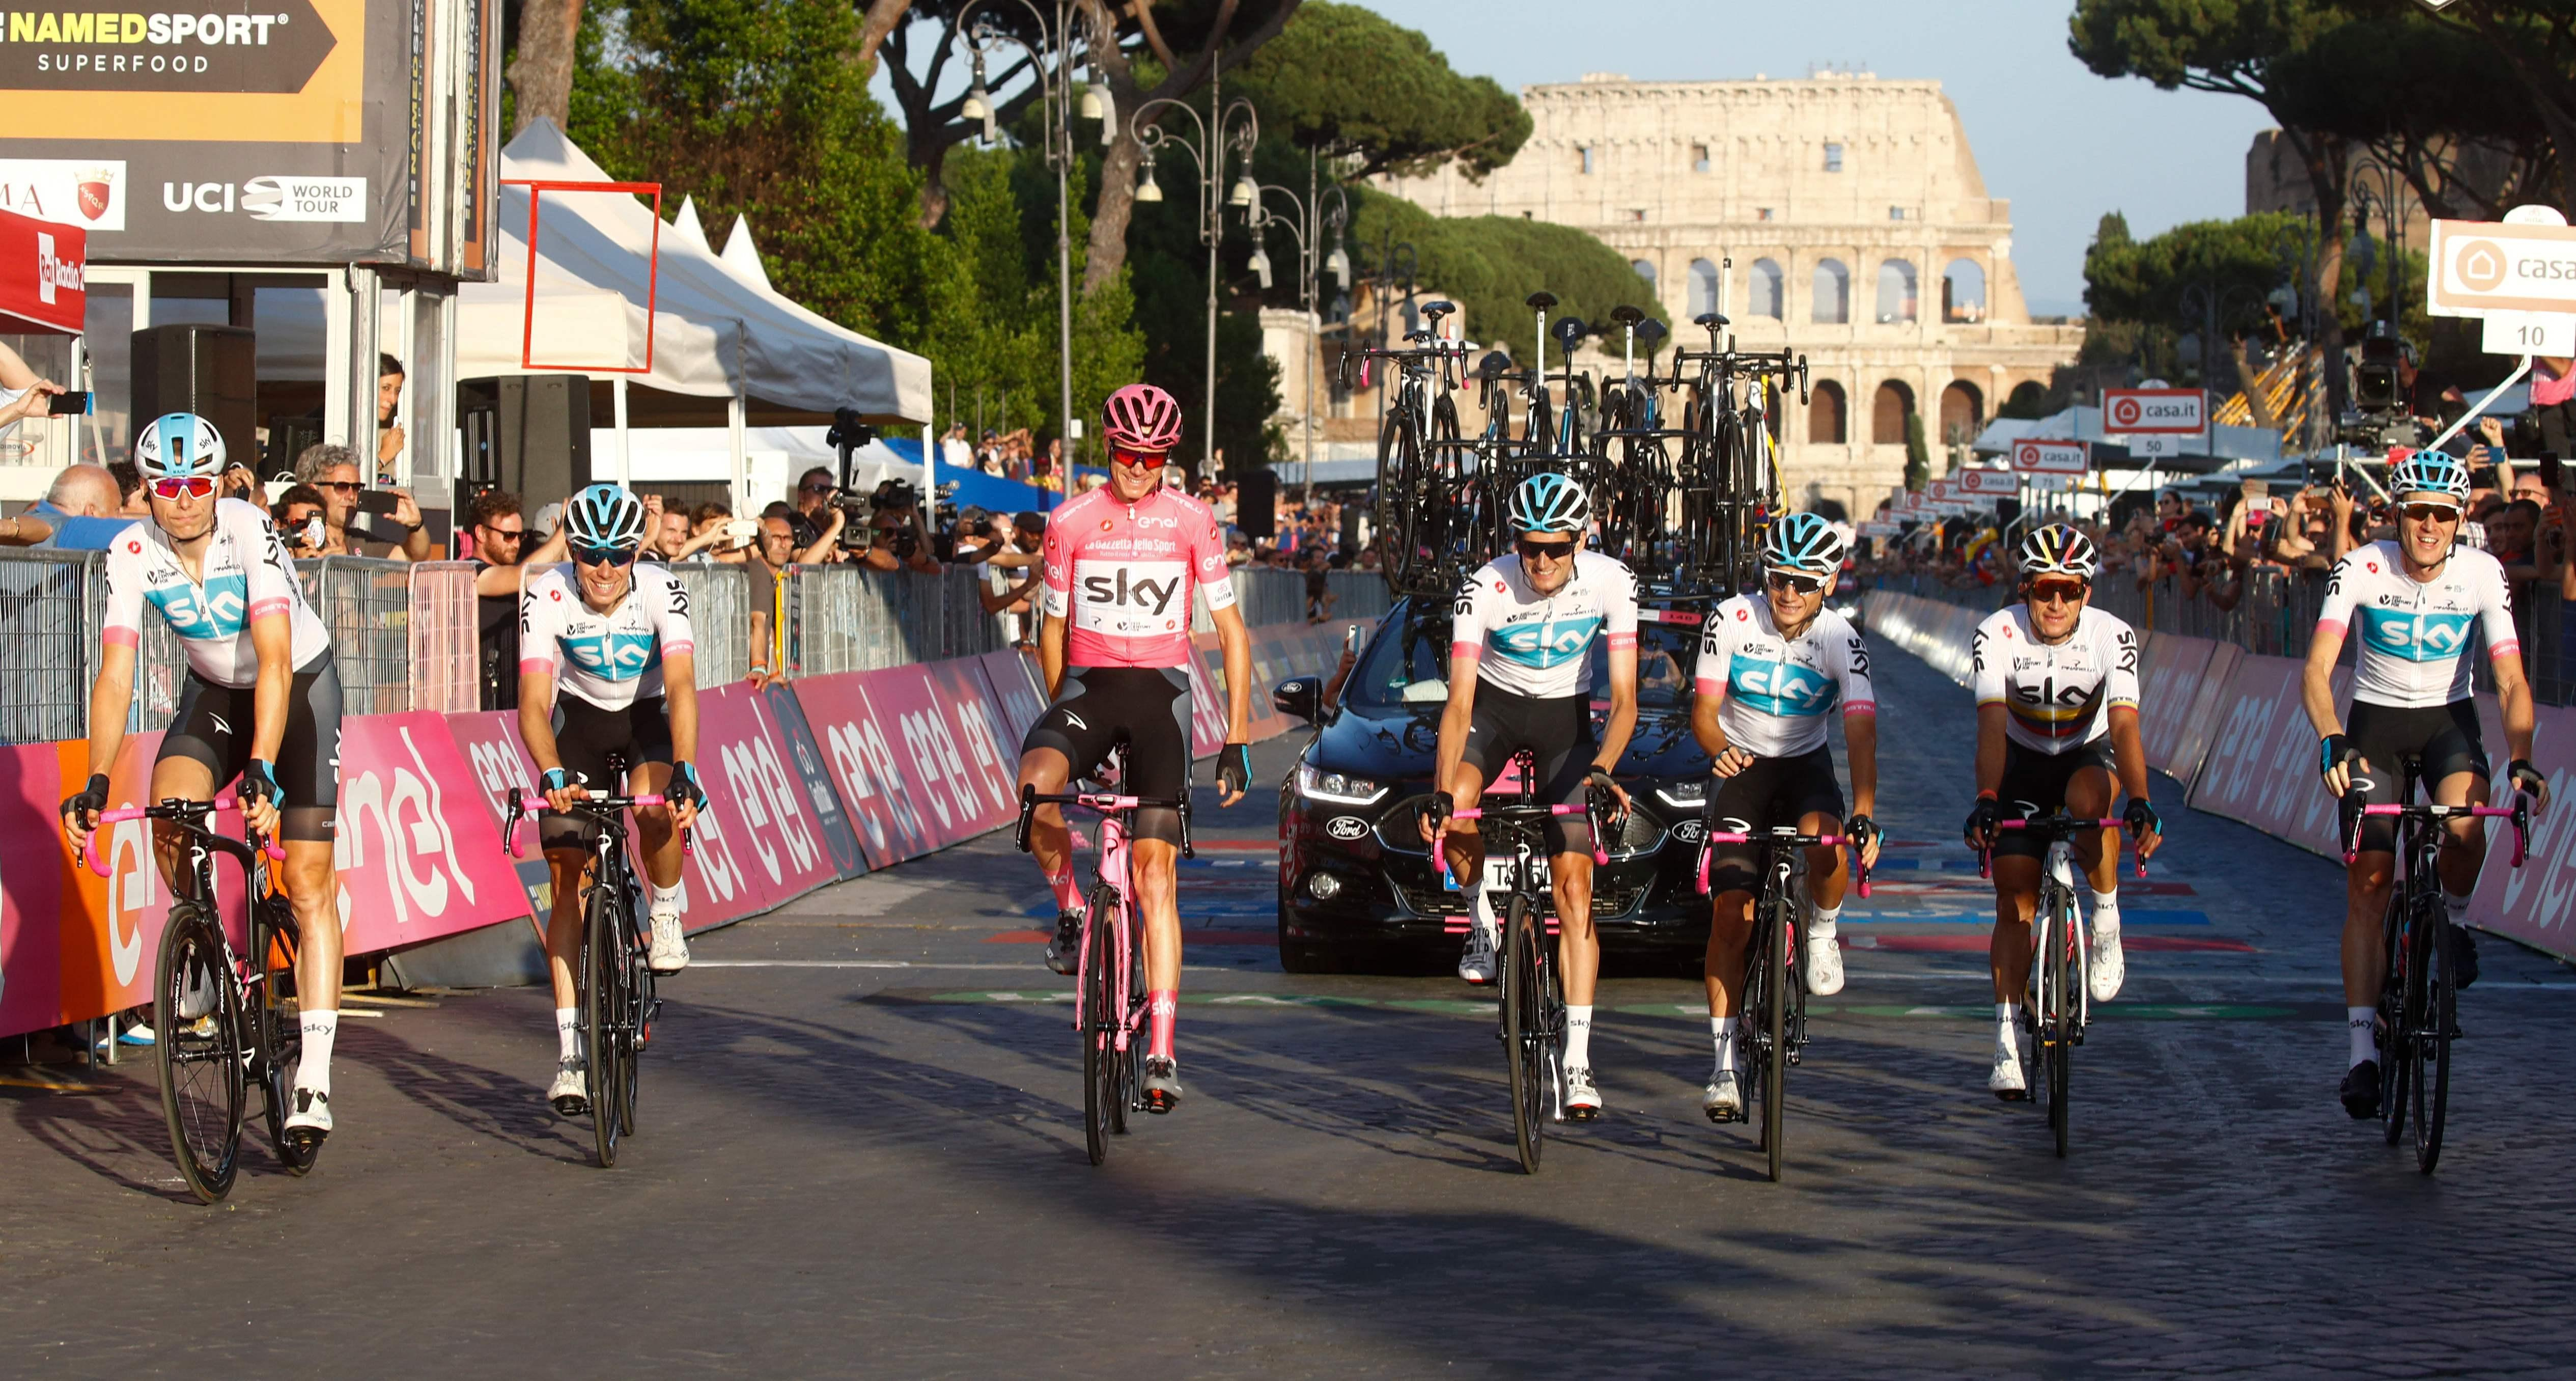 Chris Froome rides home in Rome to complete his Giro victory with his Team Sky team-mates